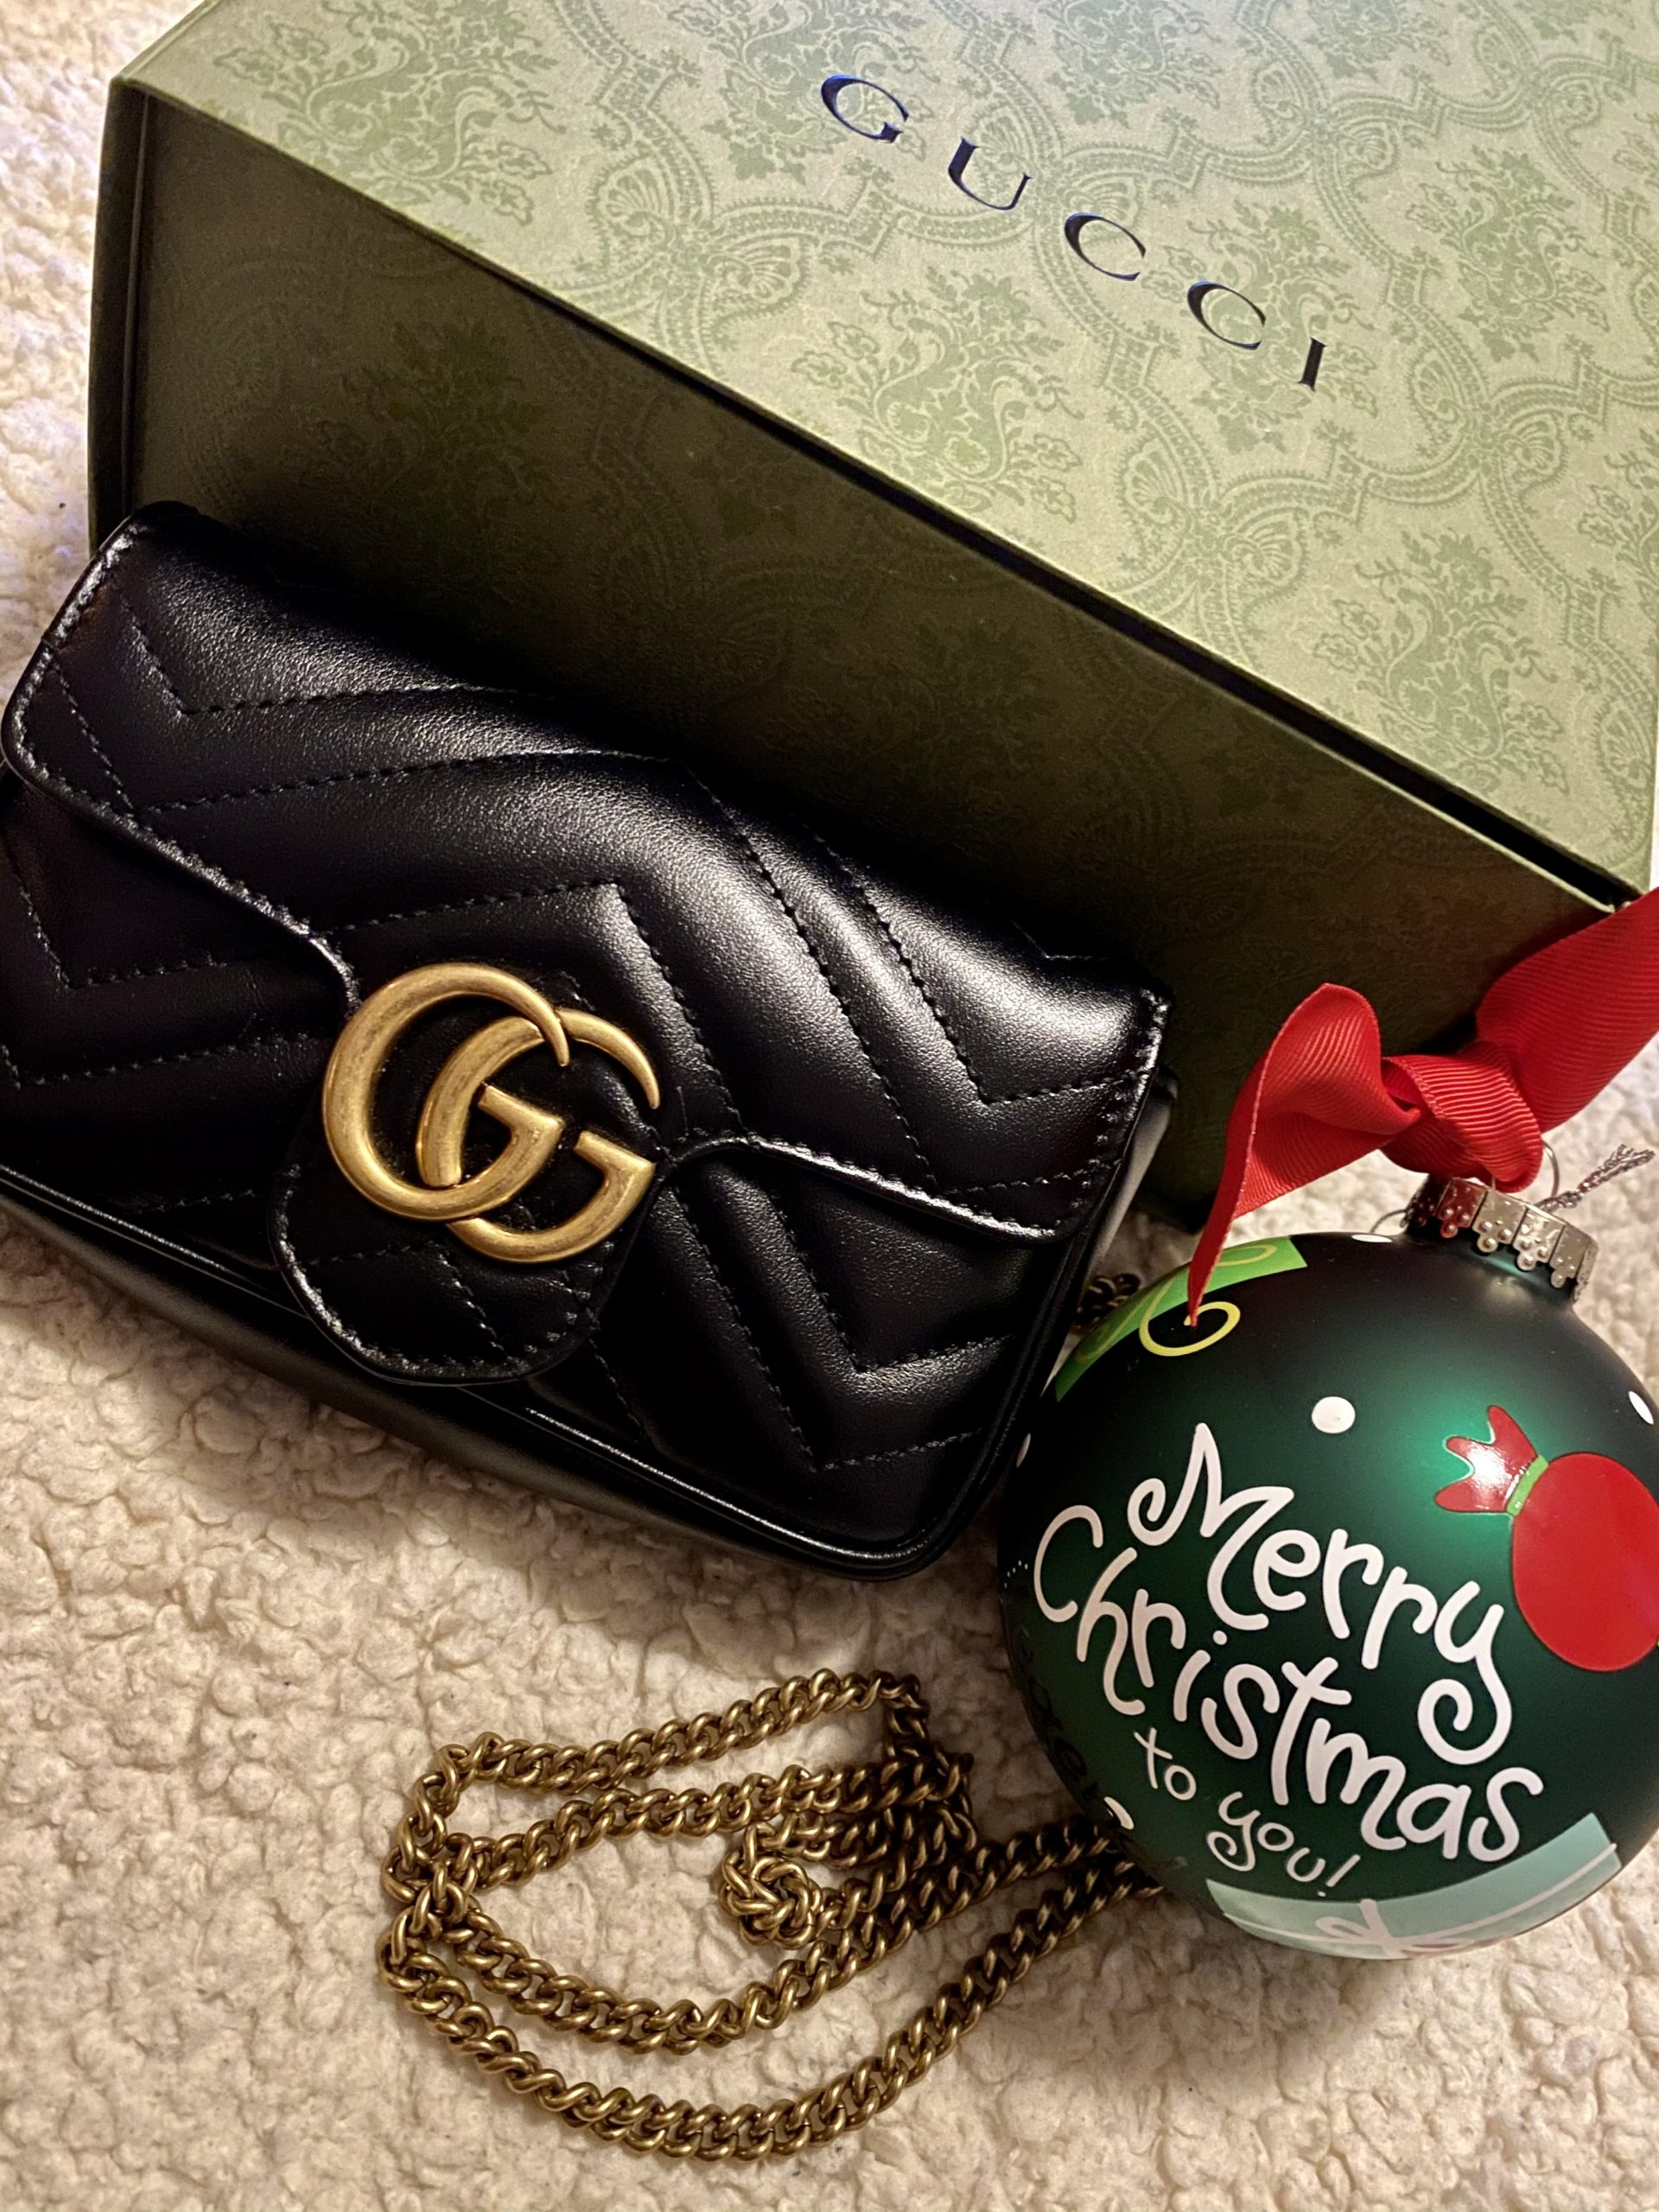 What's In My Bag: Gucci GG Marmont Matelassé Leather Super Mini Bag